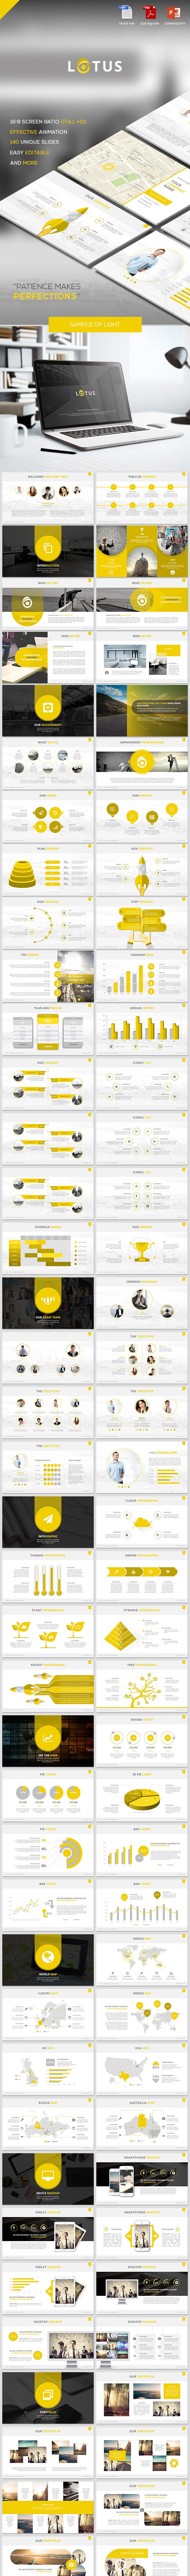 Lotus - Multipurpose Powerpoint Template - Business PowerPoint Templates